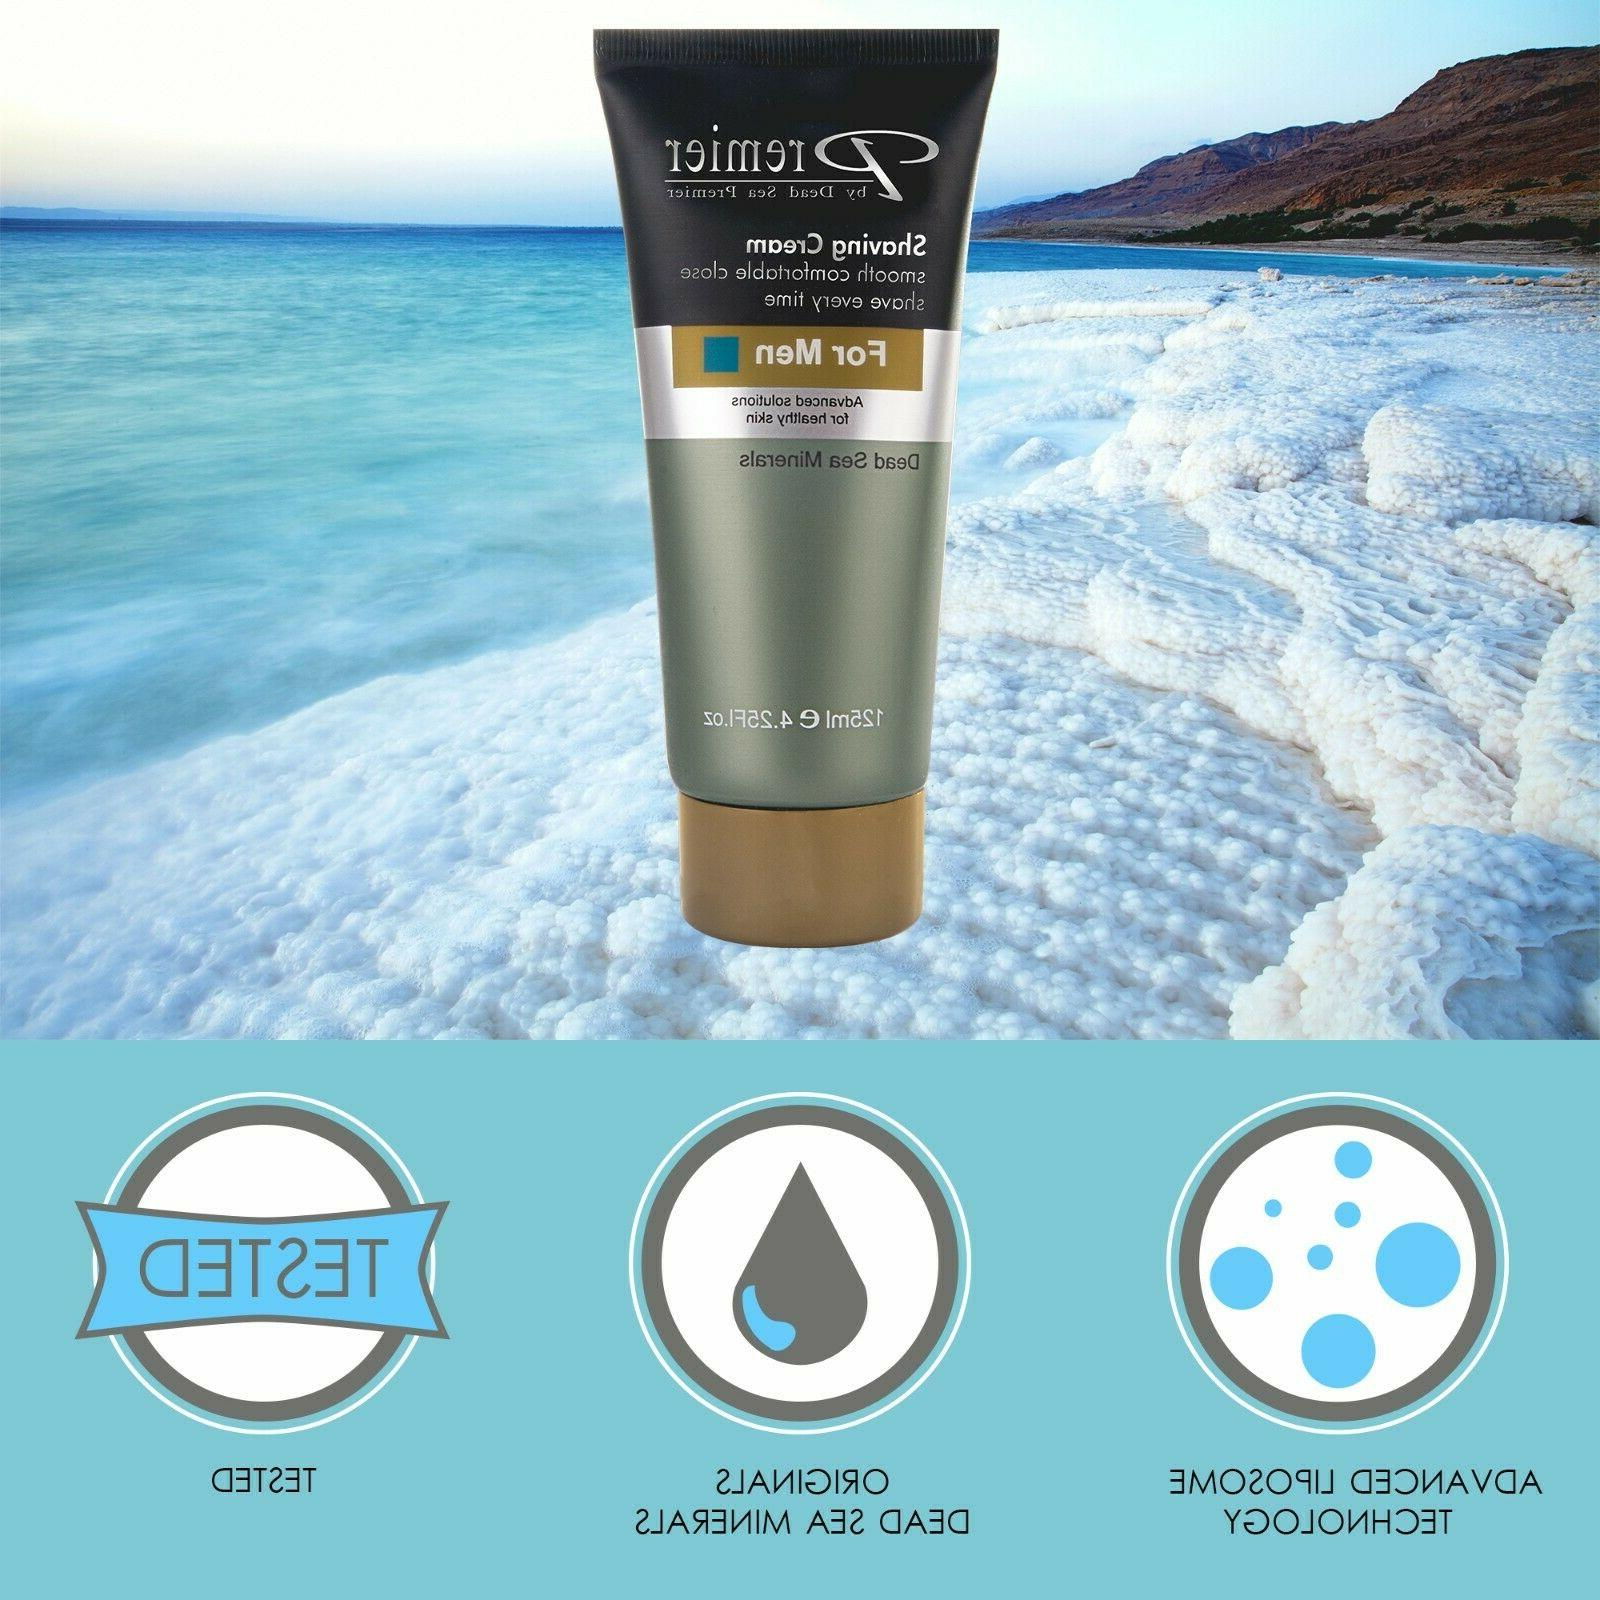 Premier Dead skin,protects from 4.2fl